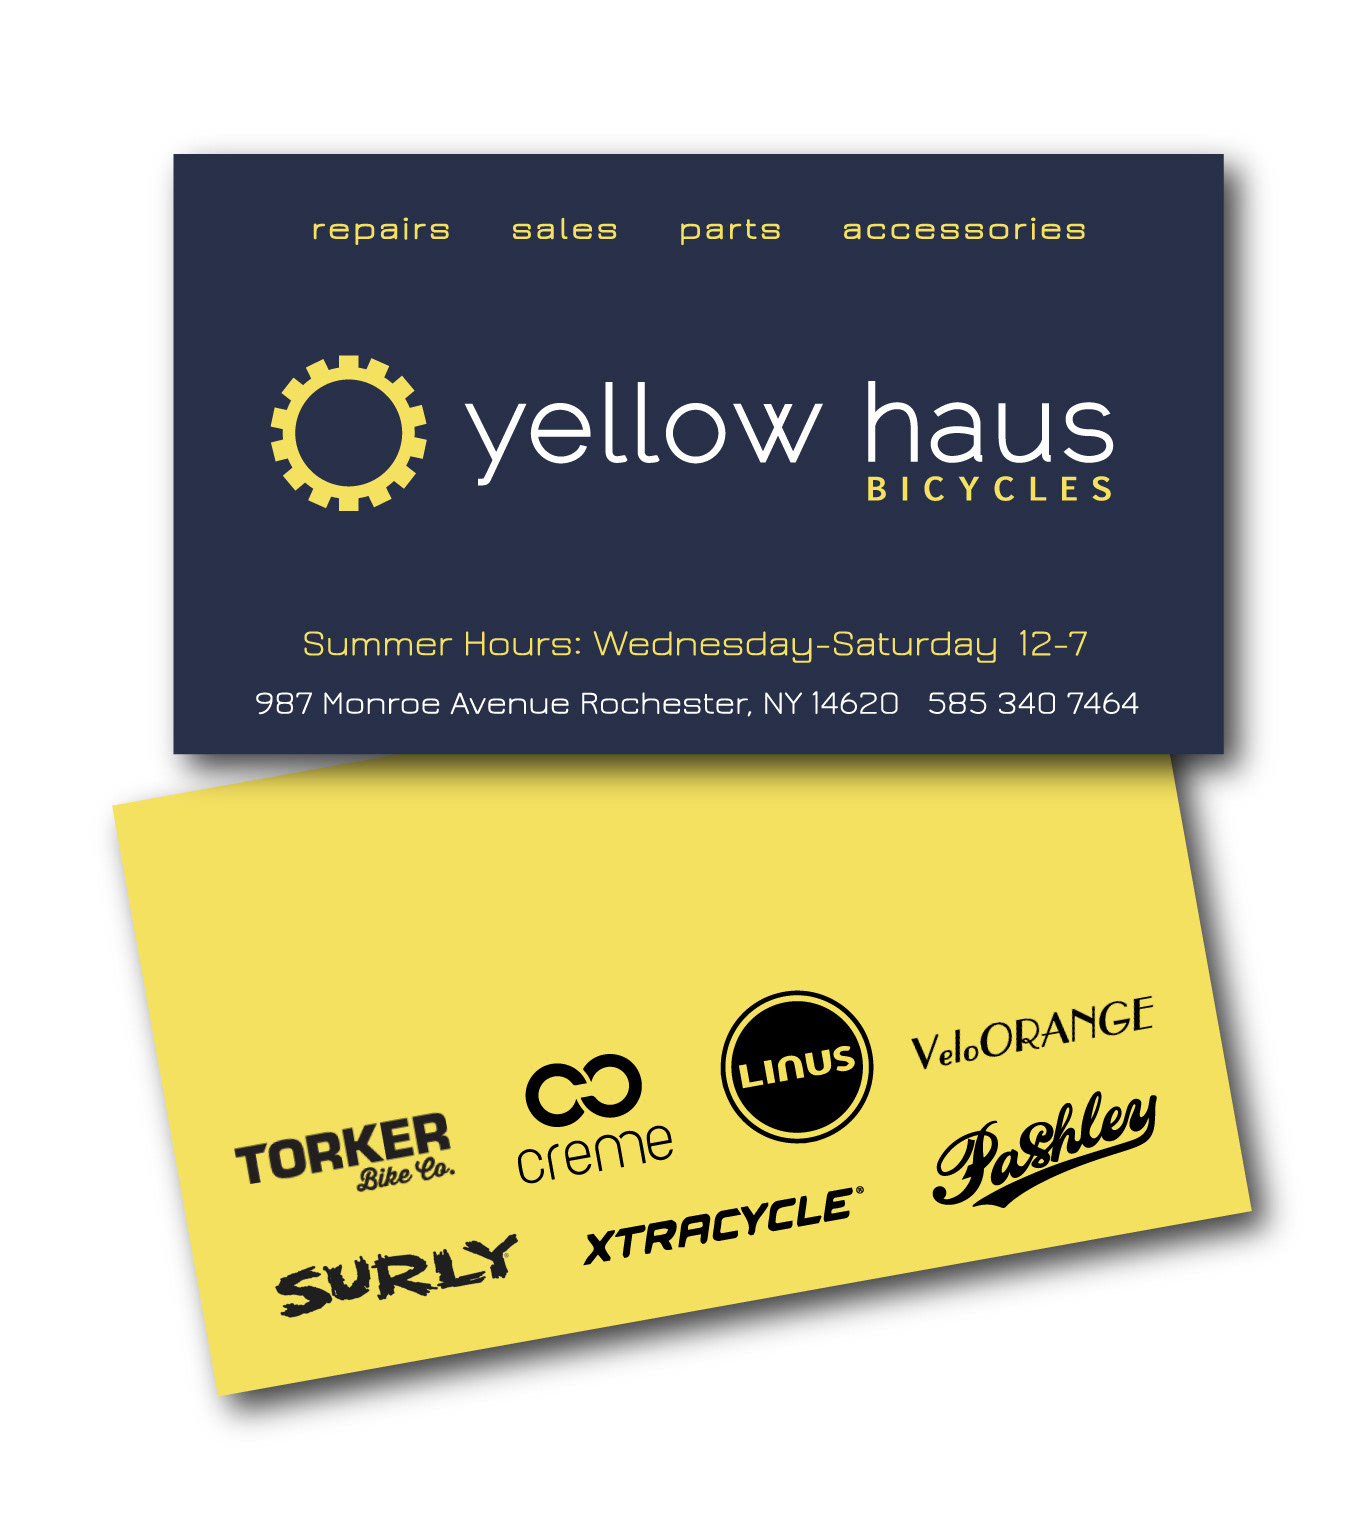 Bicycle Business Cards Images - Business Card Template